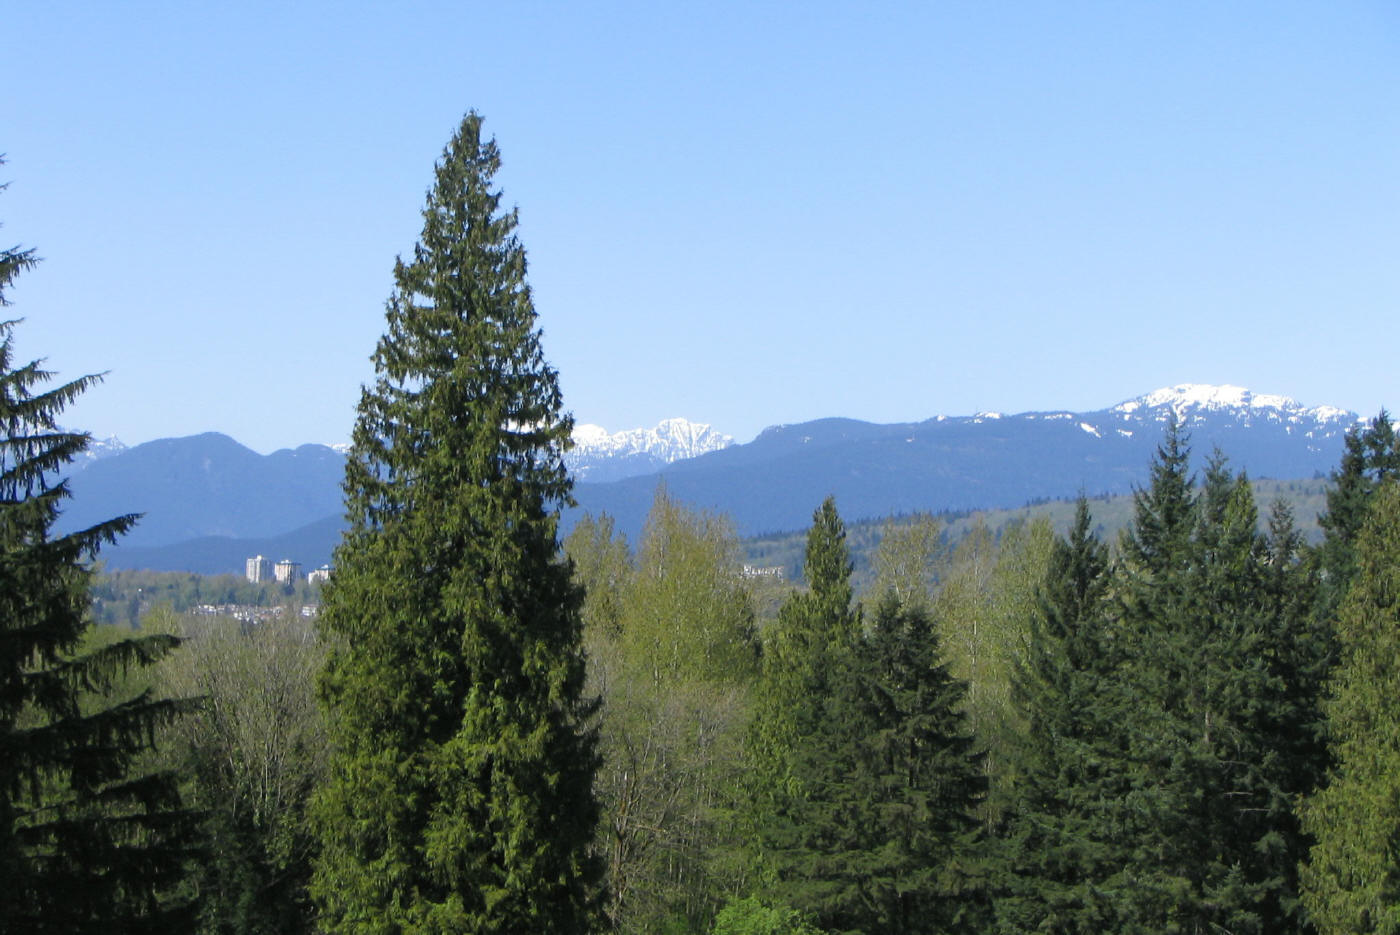 File:Montecito Cathedral Mtn & Mt Seymour from Robert Burnaby Park